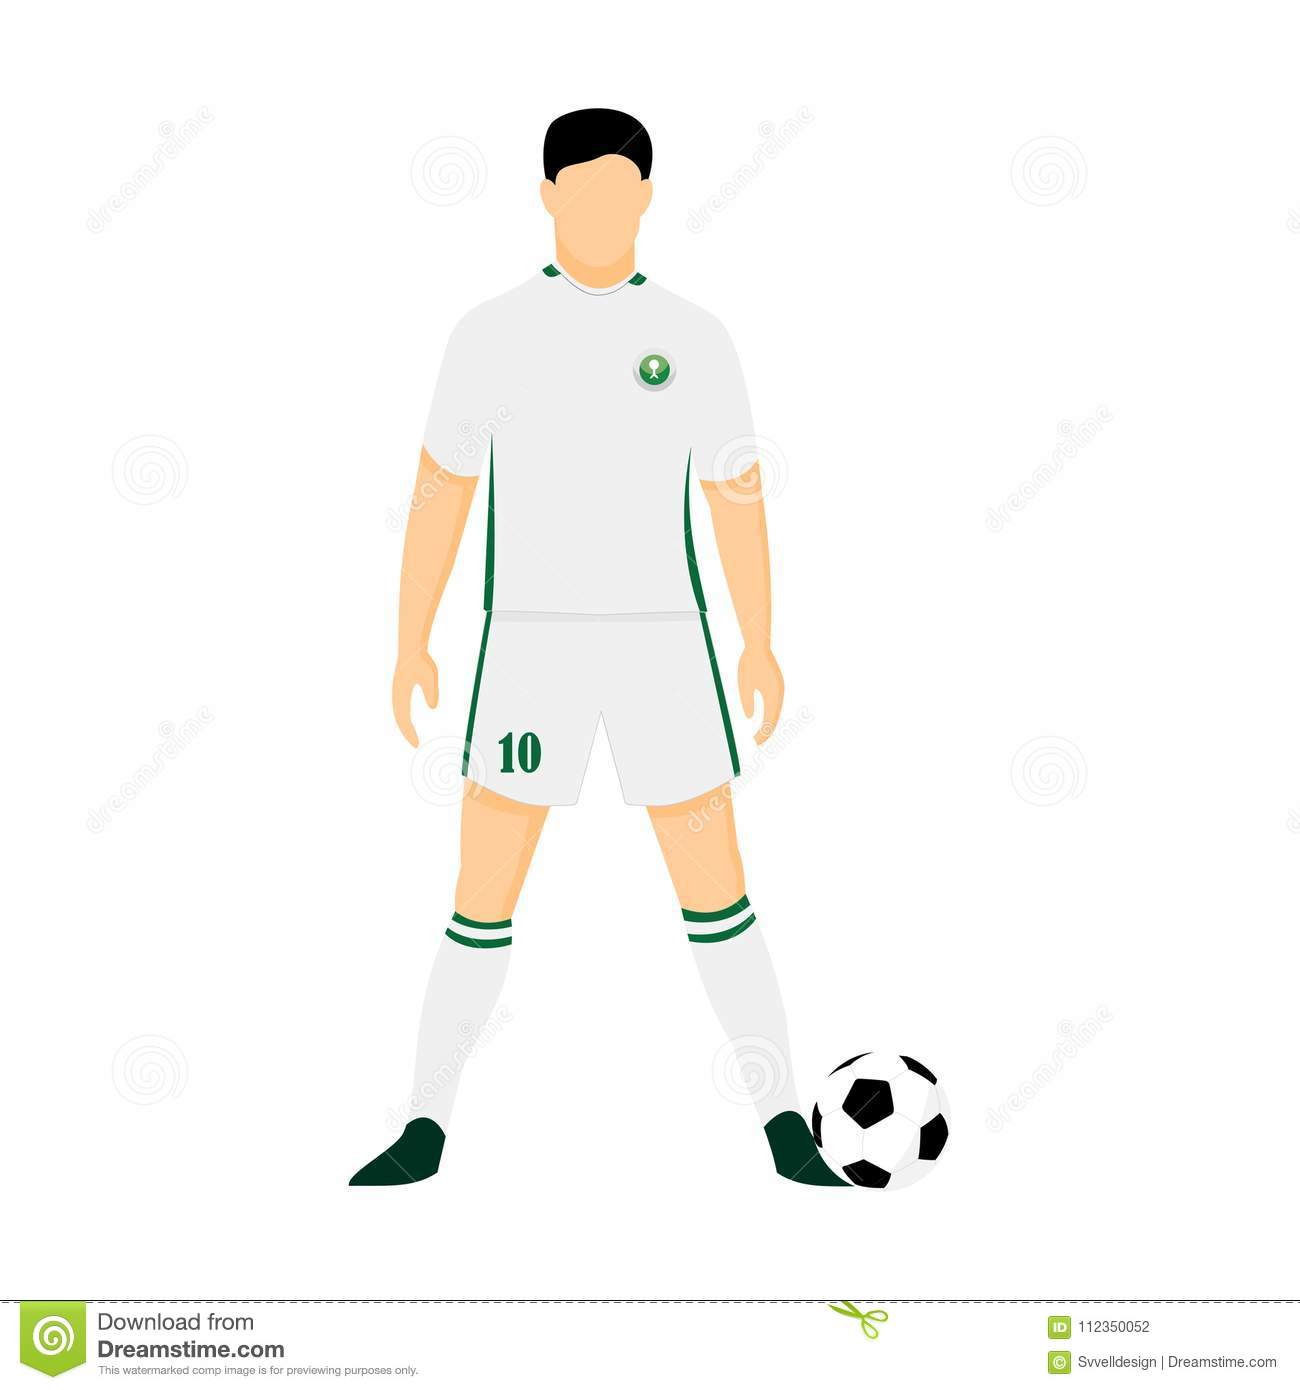 ede5a3dc3 Saudi Arabia Football Jersey National Team World Cup Vector Illustration  Graphic Design